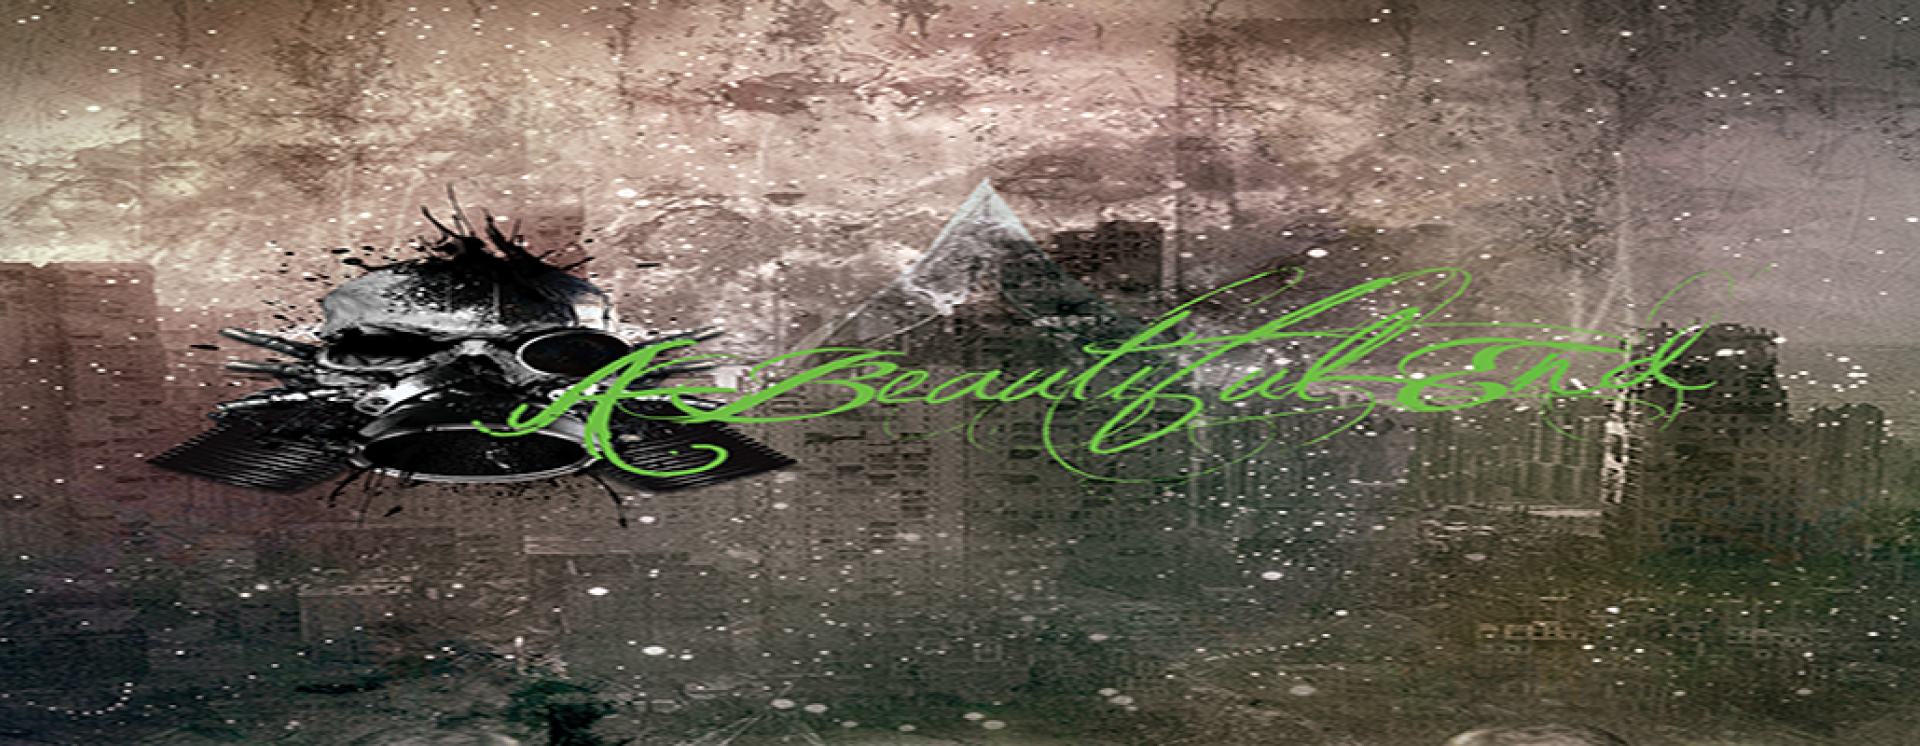 1432503532 banner jaded copy